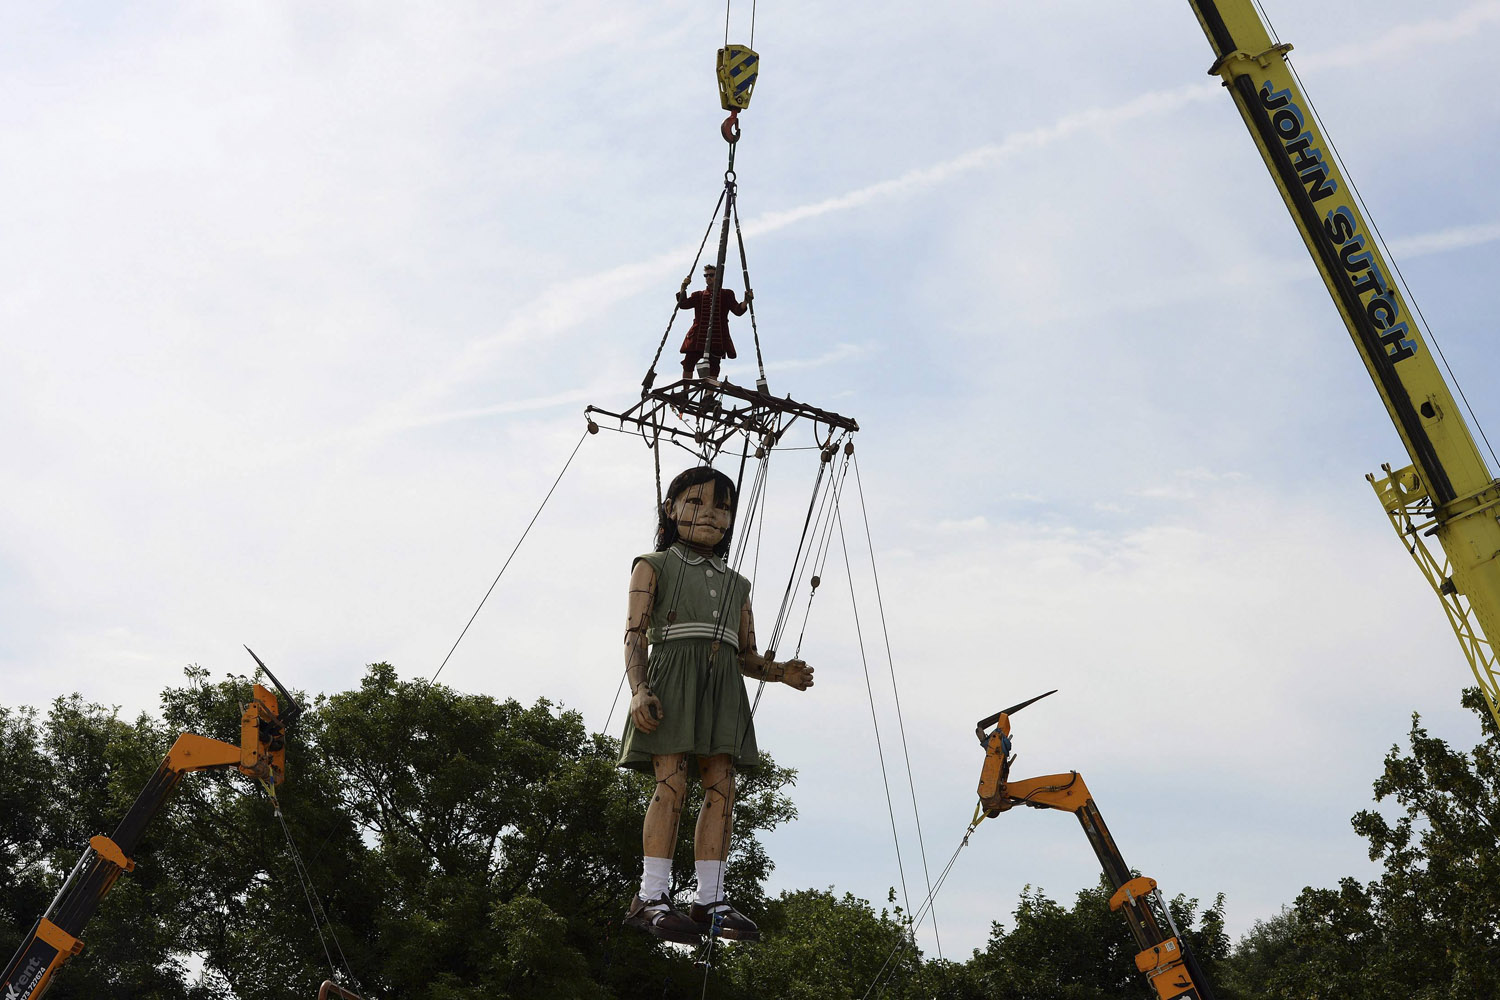 Jul. 26, 2014. A crane lifts a puppet of a girl in Liverpool, northern England. The puppet is part of the  Memories of August 1914  World War One commemorative event in Liverpool.